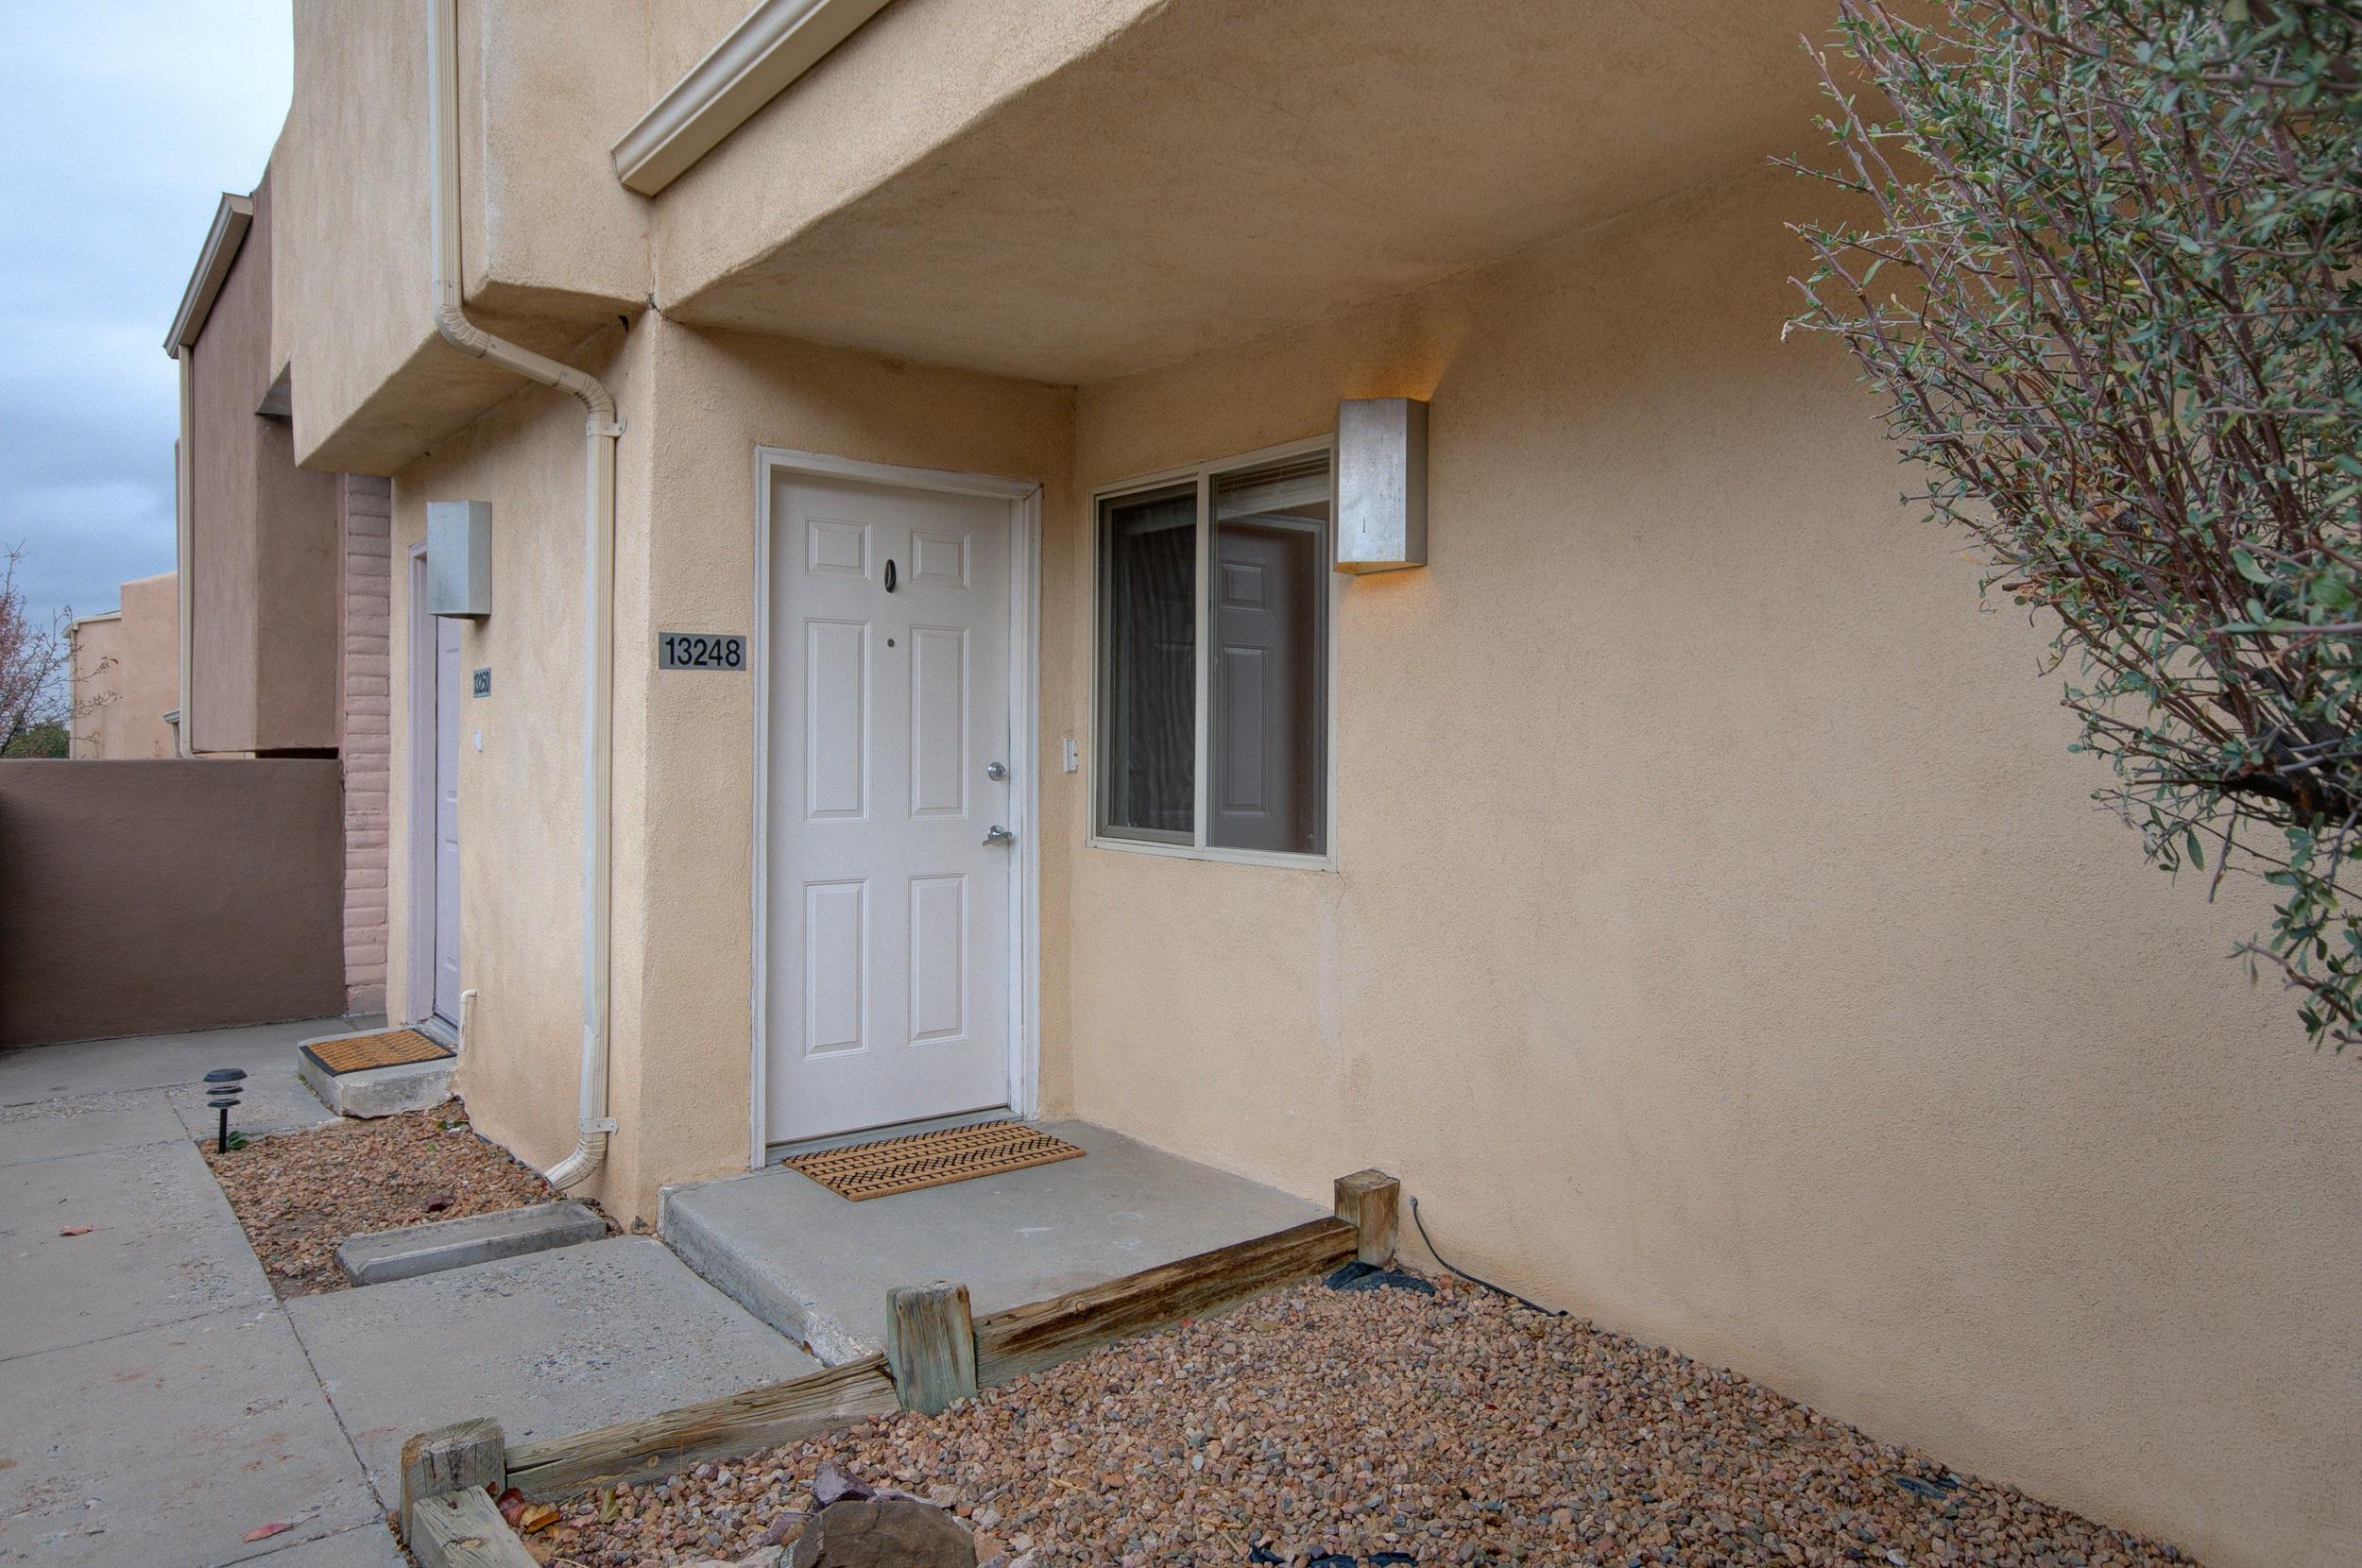 Ground level Condo is squeaky clean and well cared for.  MOVE IN READY! New Carpet, paint, Dishwasher. 40 Gal Hot Water Heater replaced in 2017. Stacked Washer/Dryer Combo in unit. Maple Cabinets installed 2005. Refrigerated A/C. Highly sought after Foothills, is very close to hiking and biking trails, parks and amenities.  Covered Carport.  HOA covers Bldg Insurance, Water, Sewer.